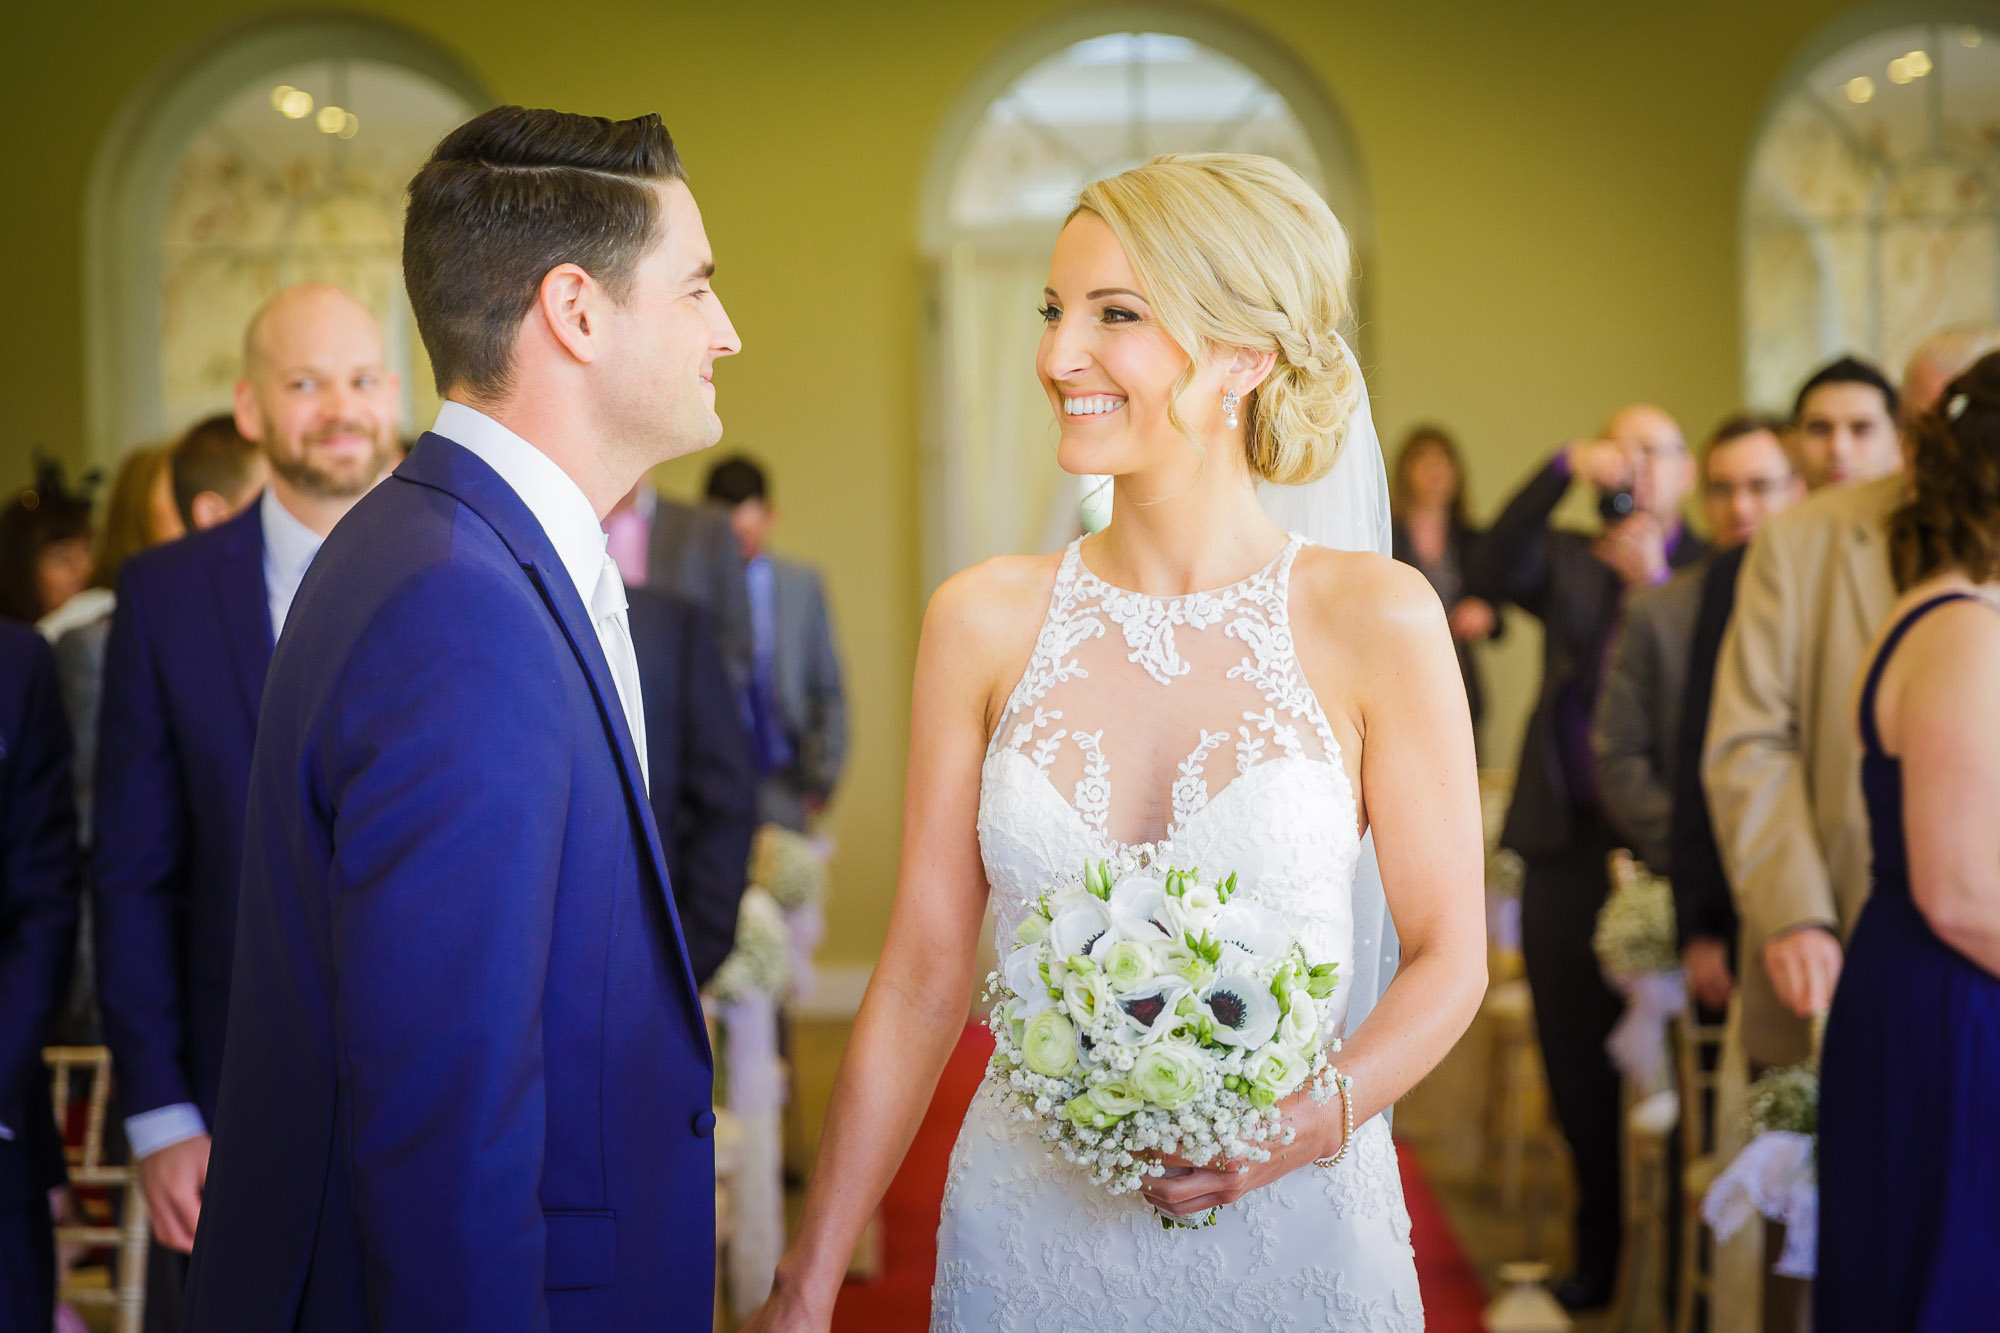 Wedding-photographs-0527